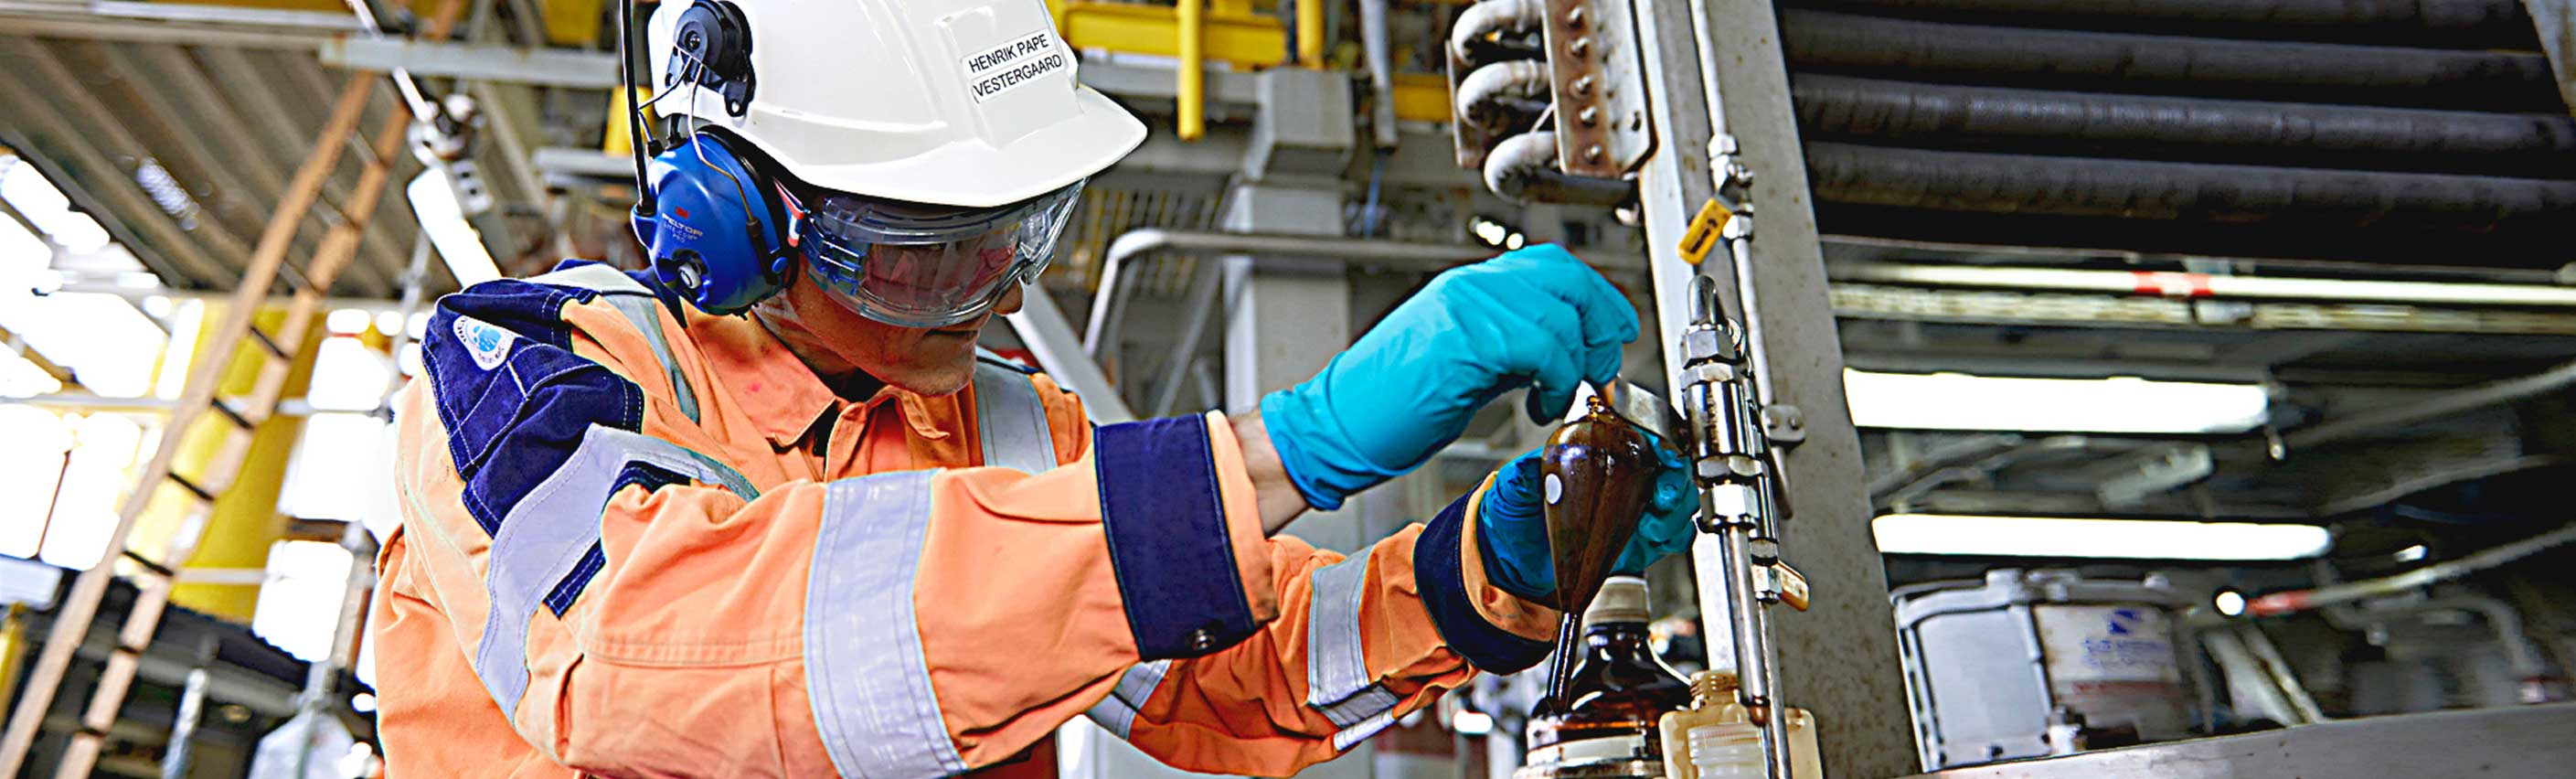 industrial safety thesis This program includes extensive engineering applications with integration of safety principles, safety practices, and case studies please visit the thesis option page for more information on this program.